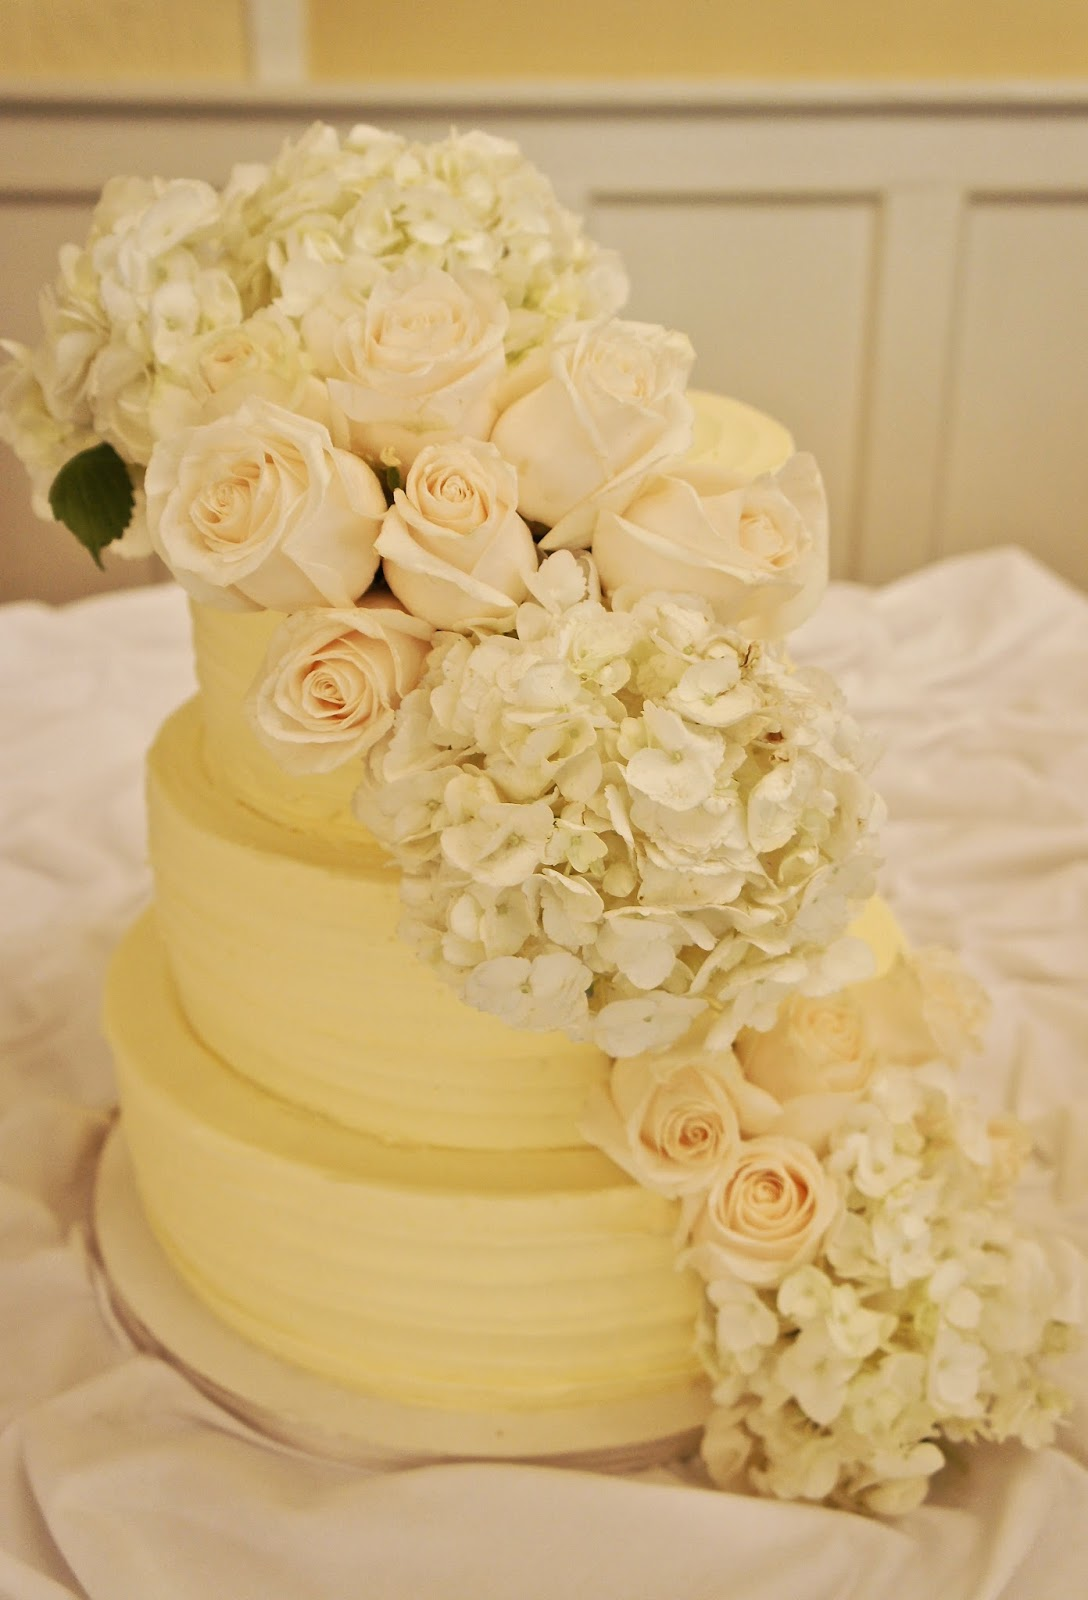 WEDDING CAKES - KIDS CAKES - CUSTOM CAKES BEST BURBANK BAKERY | Half ...